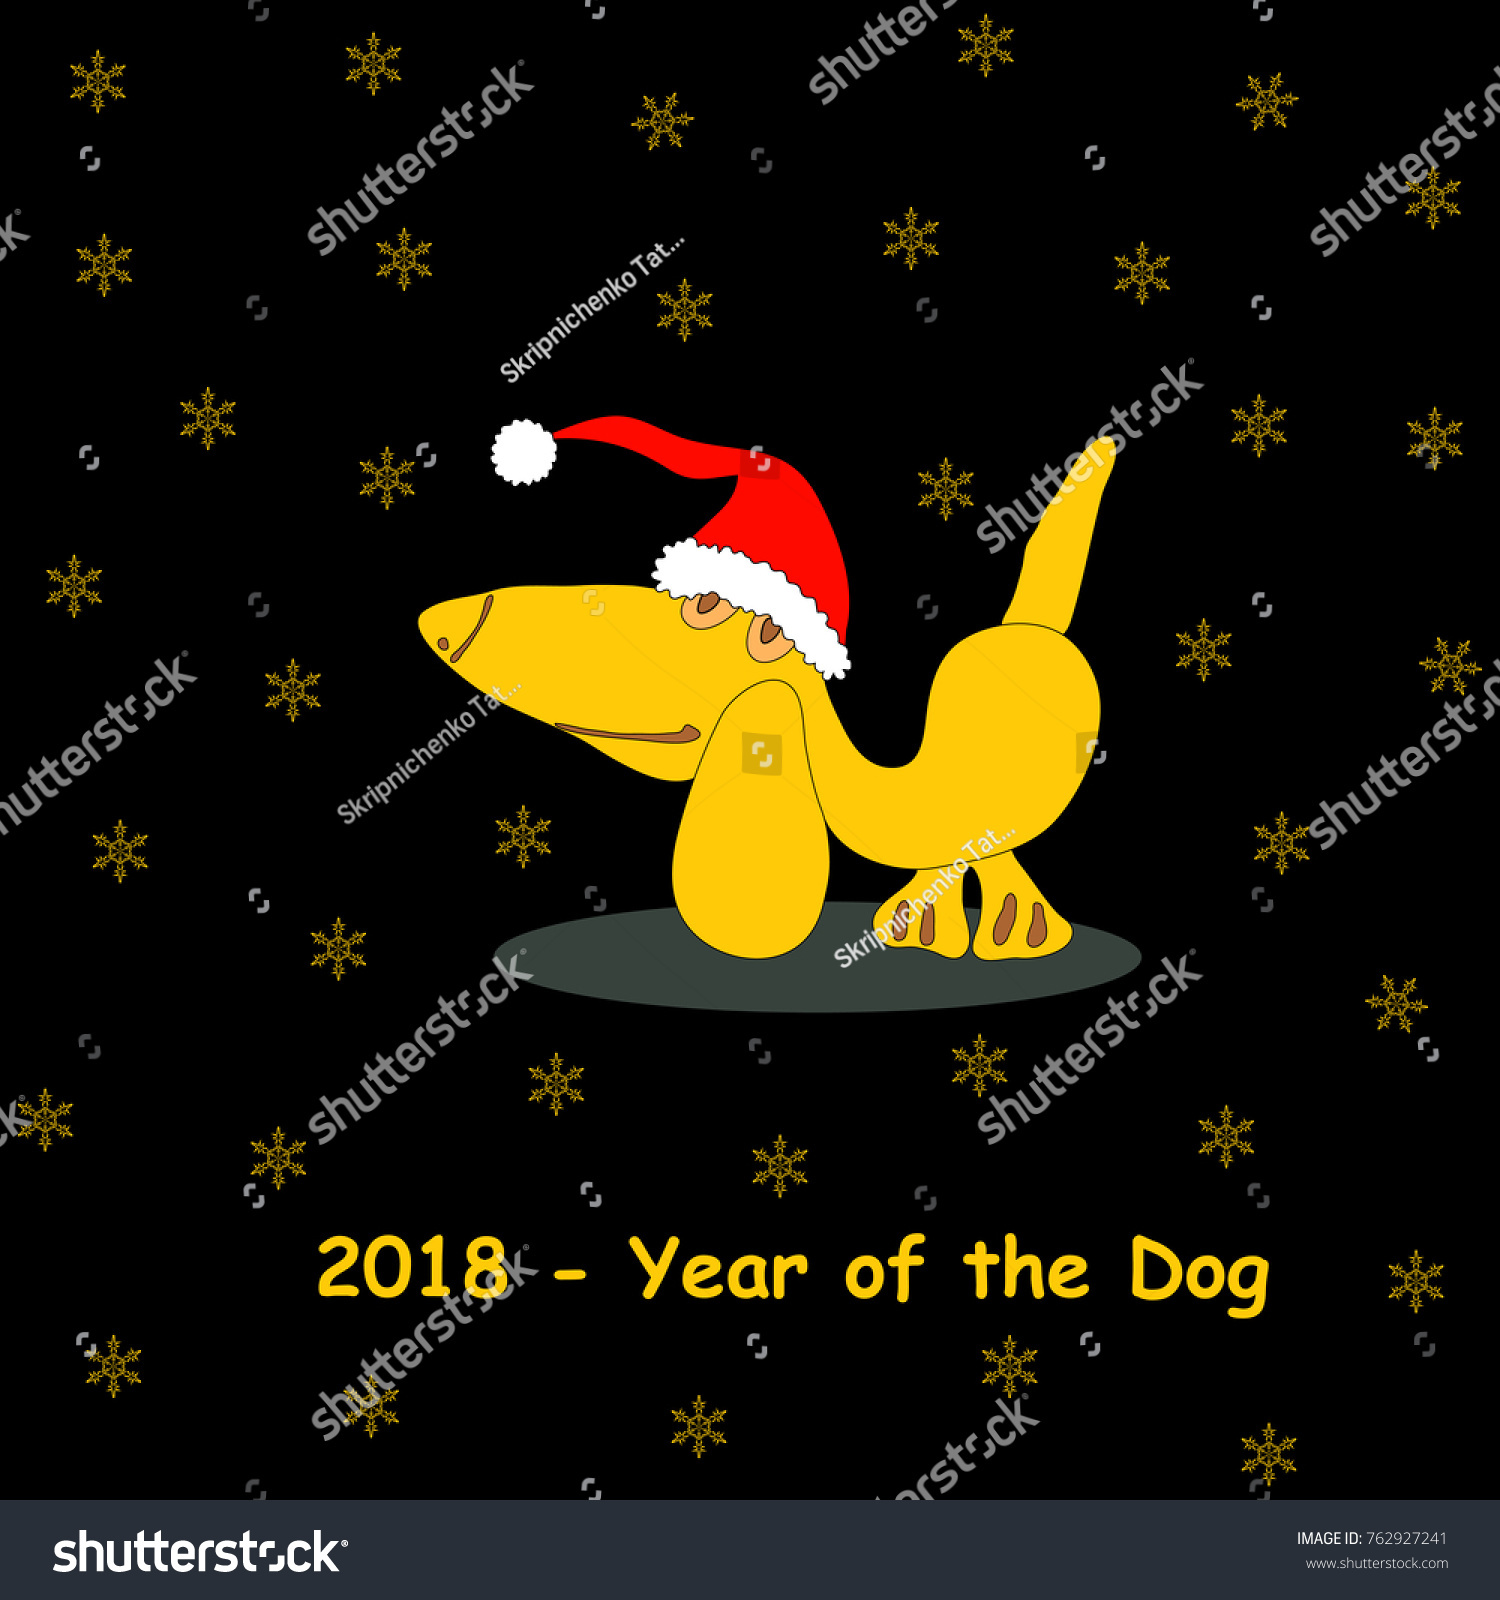 Black background amusing yellow dog santa stock vector 762927241 black background with amusing yellow dog in santa hat snowflakes and text banner with biocorpaavc